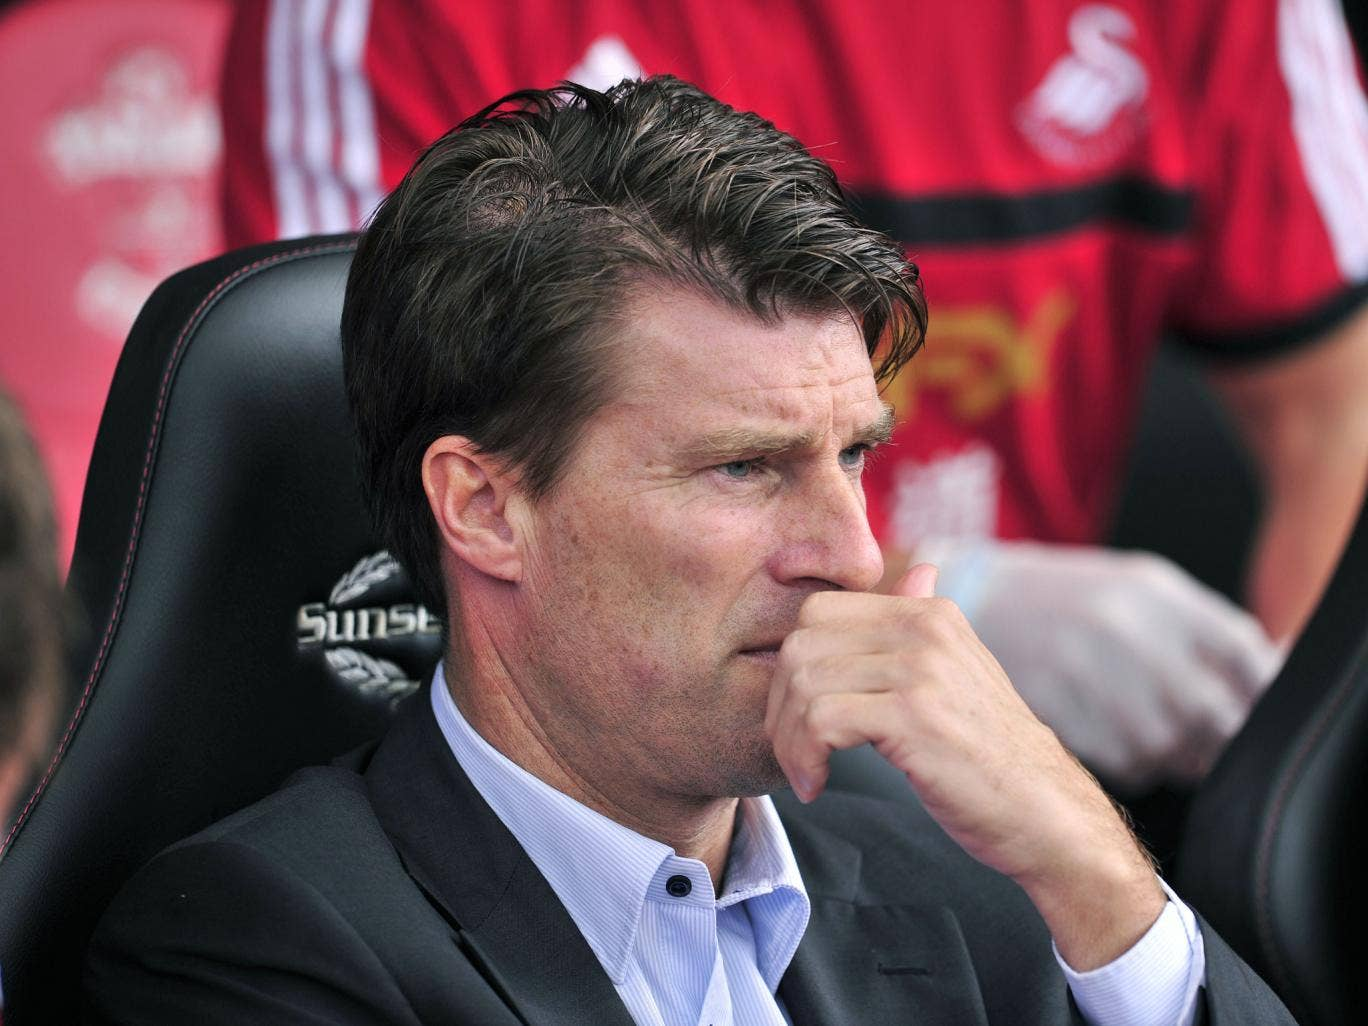 Swansea City's Danish manger Michael Laudrup is pictured before the start of the English Premier League football match between Southampton and Swansea City